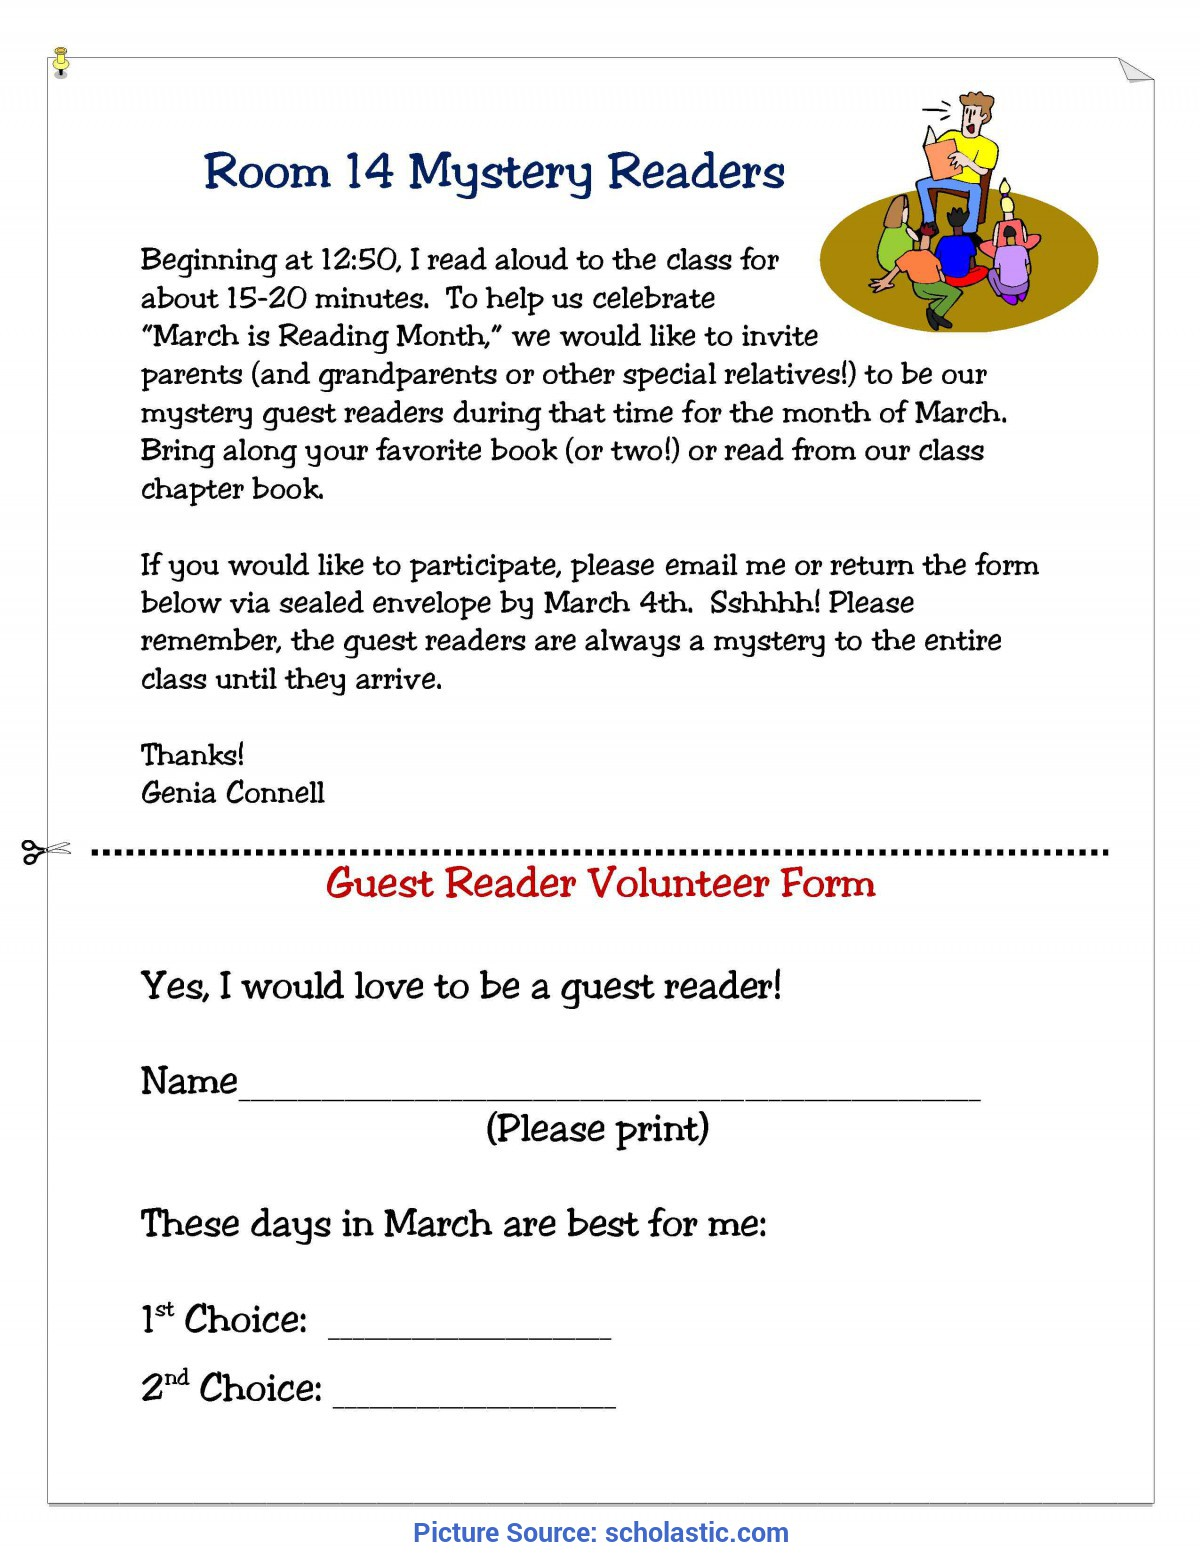 Complex Preschool Lesson Plans For March 2013 Celebrate The Joy Of Reading All Month Long   Schola